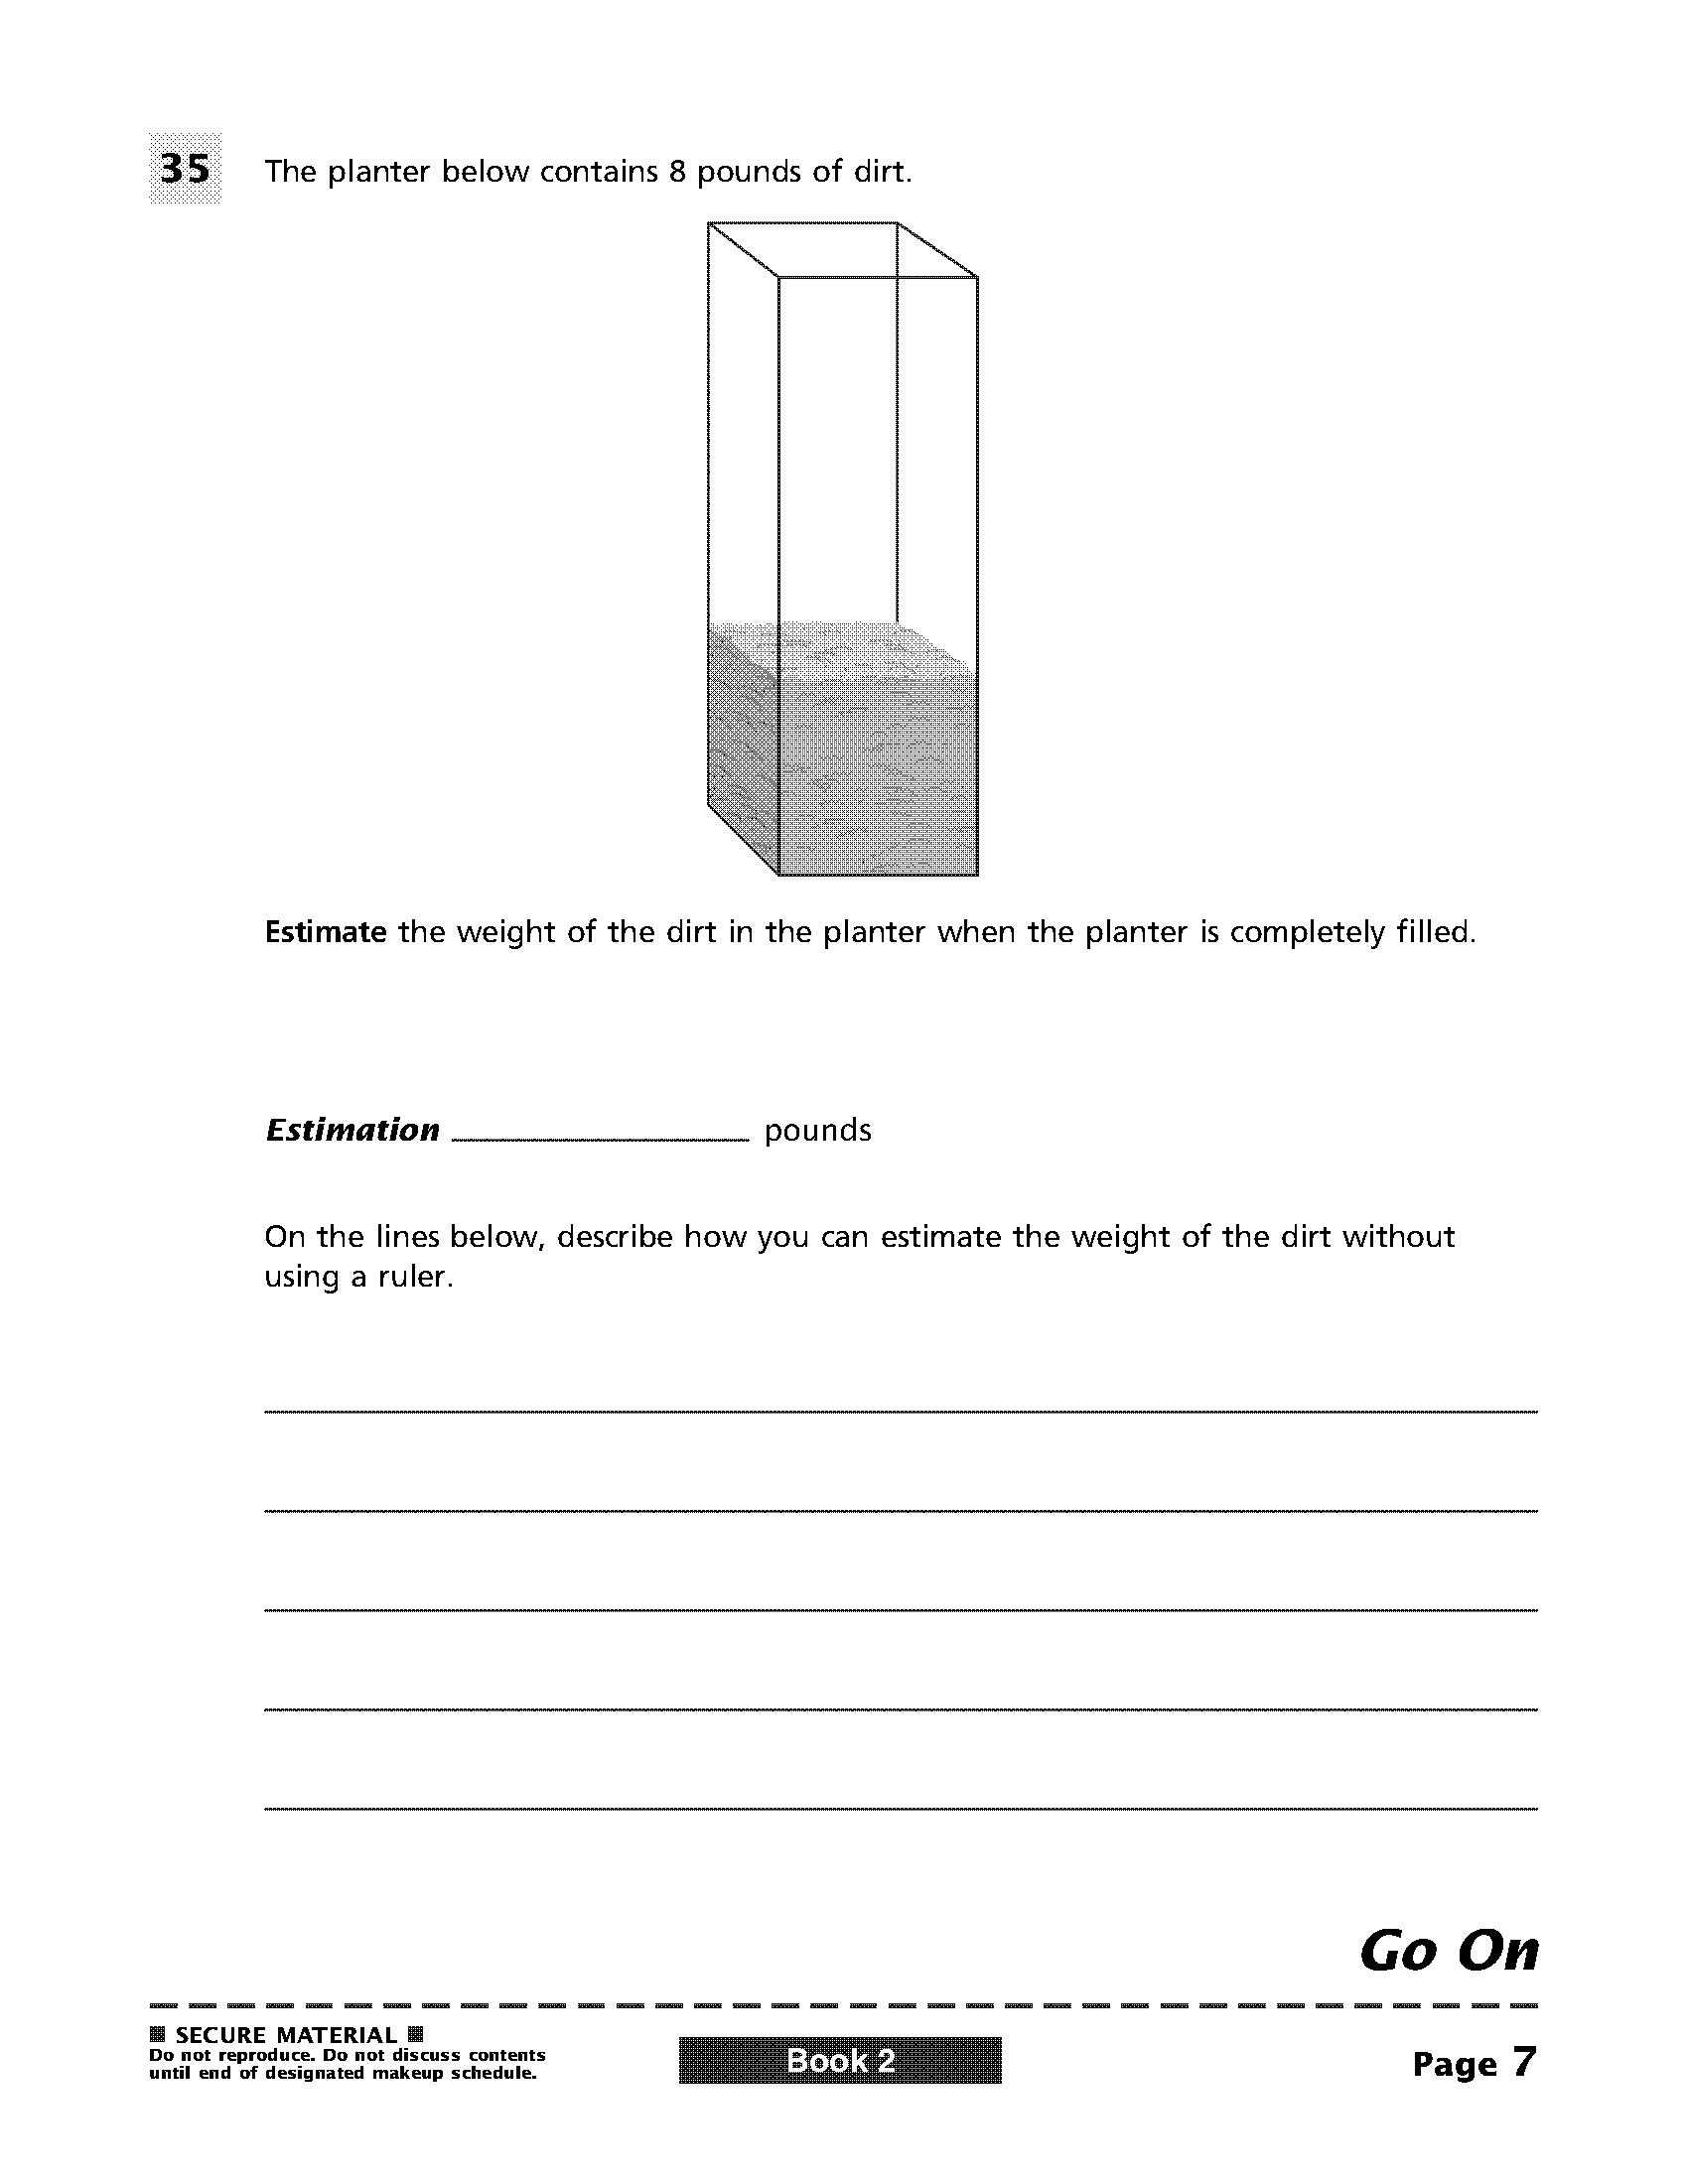 3rd Grade Geometry Worksheets as Well as Content Tech 7th Grade Math